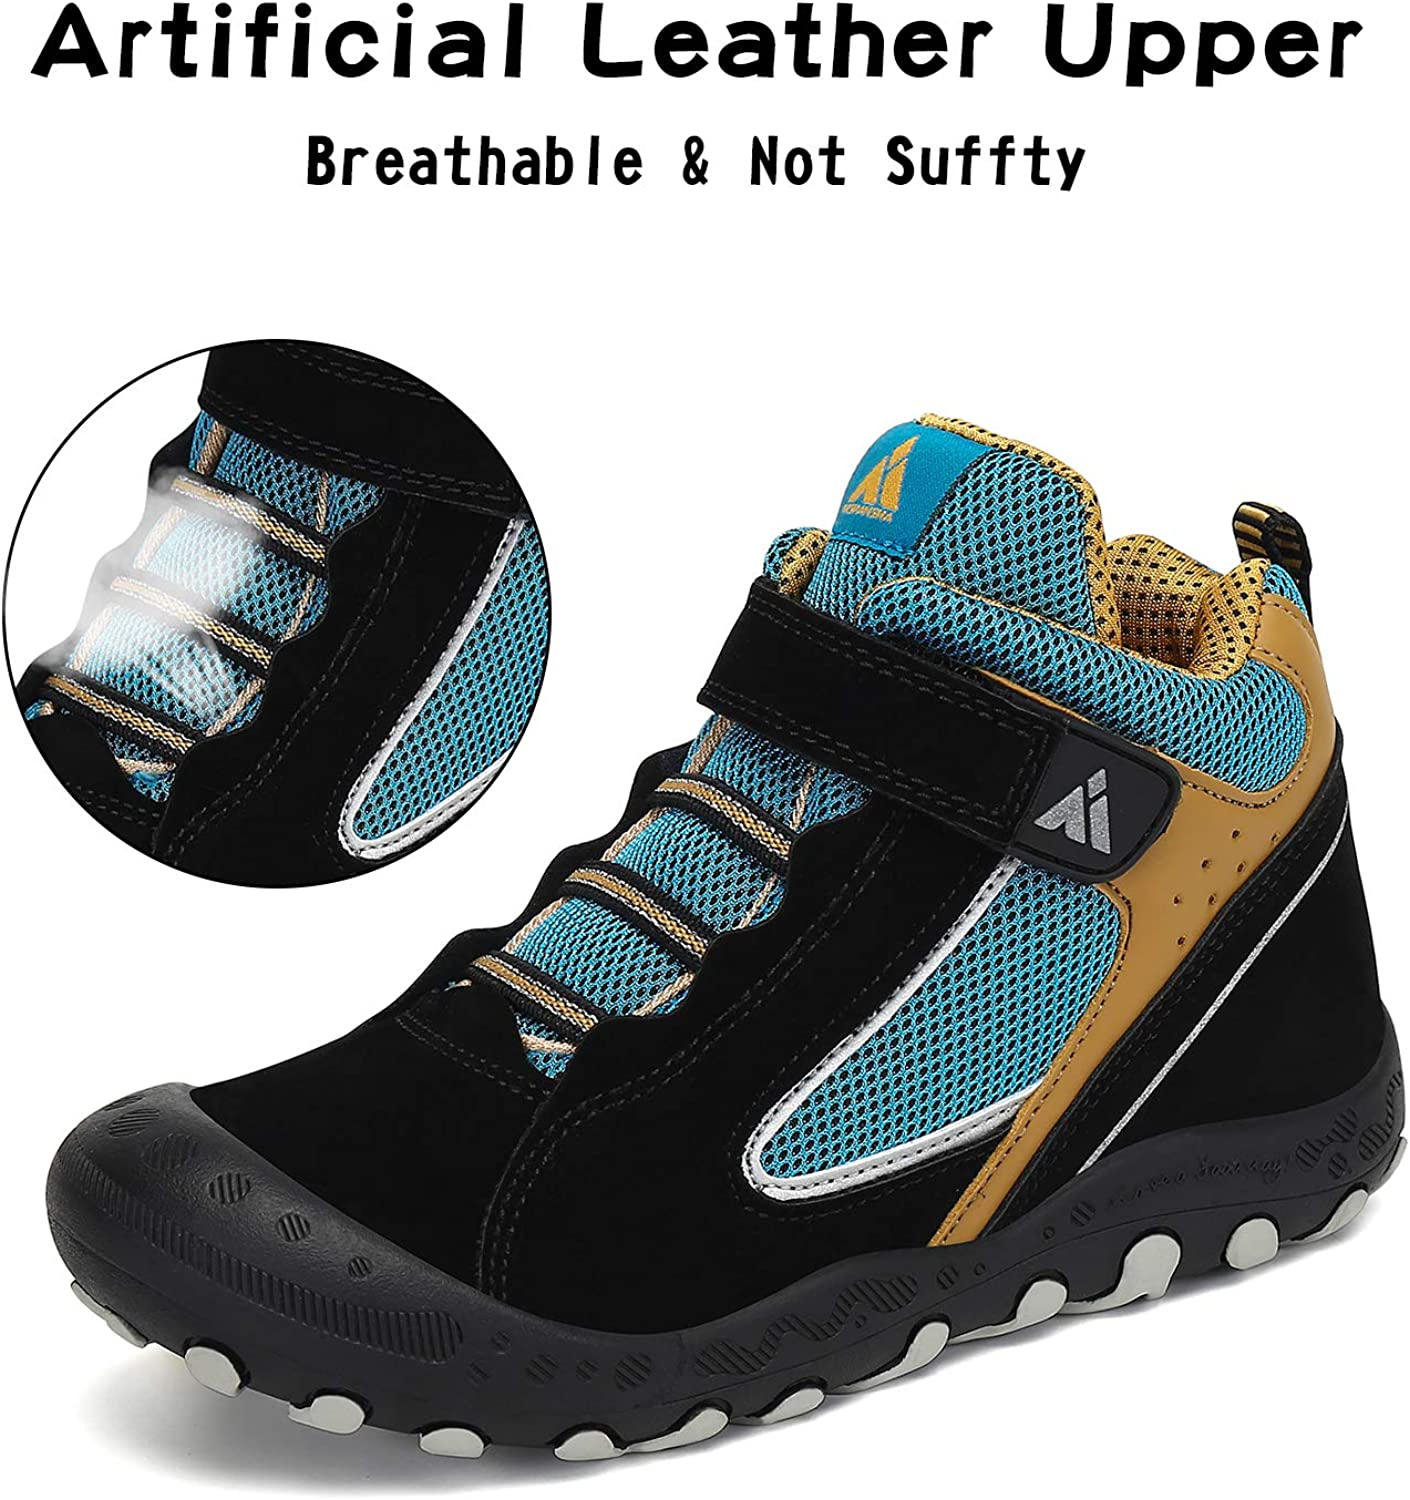 Mishansha Mens Womens Anti-Slip Leather Ankle Water Resistant Hiking Boots